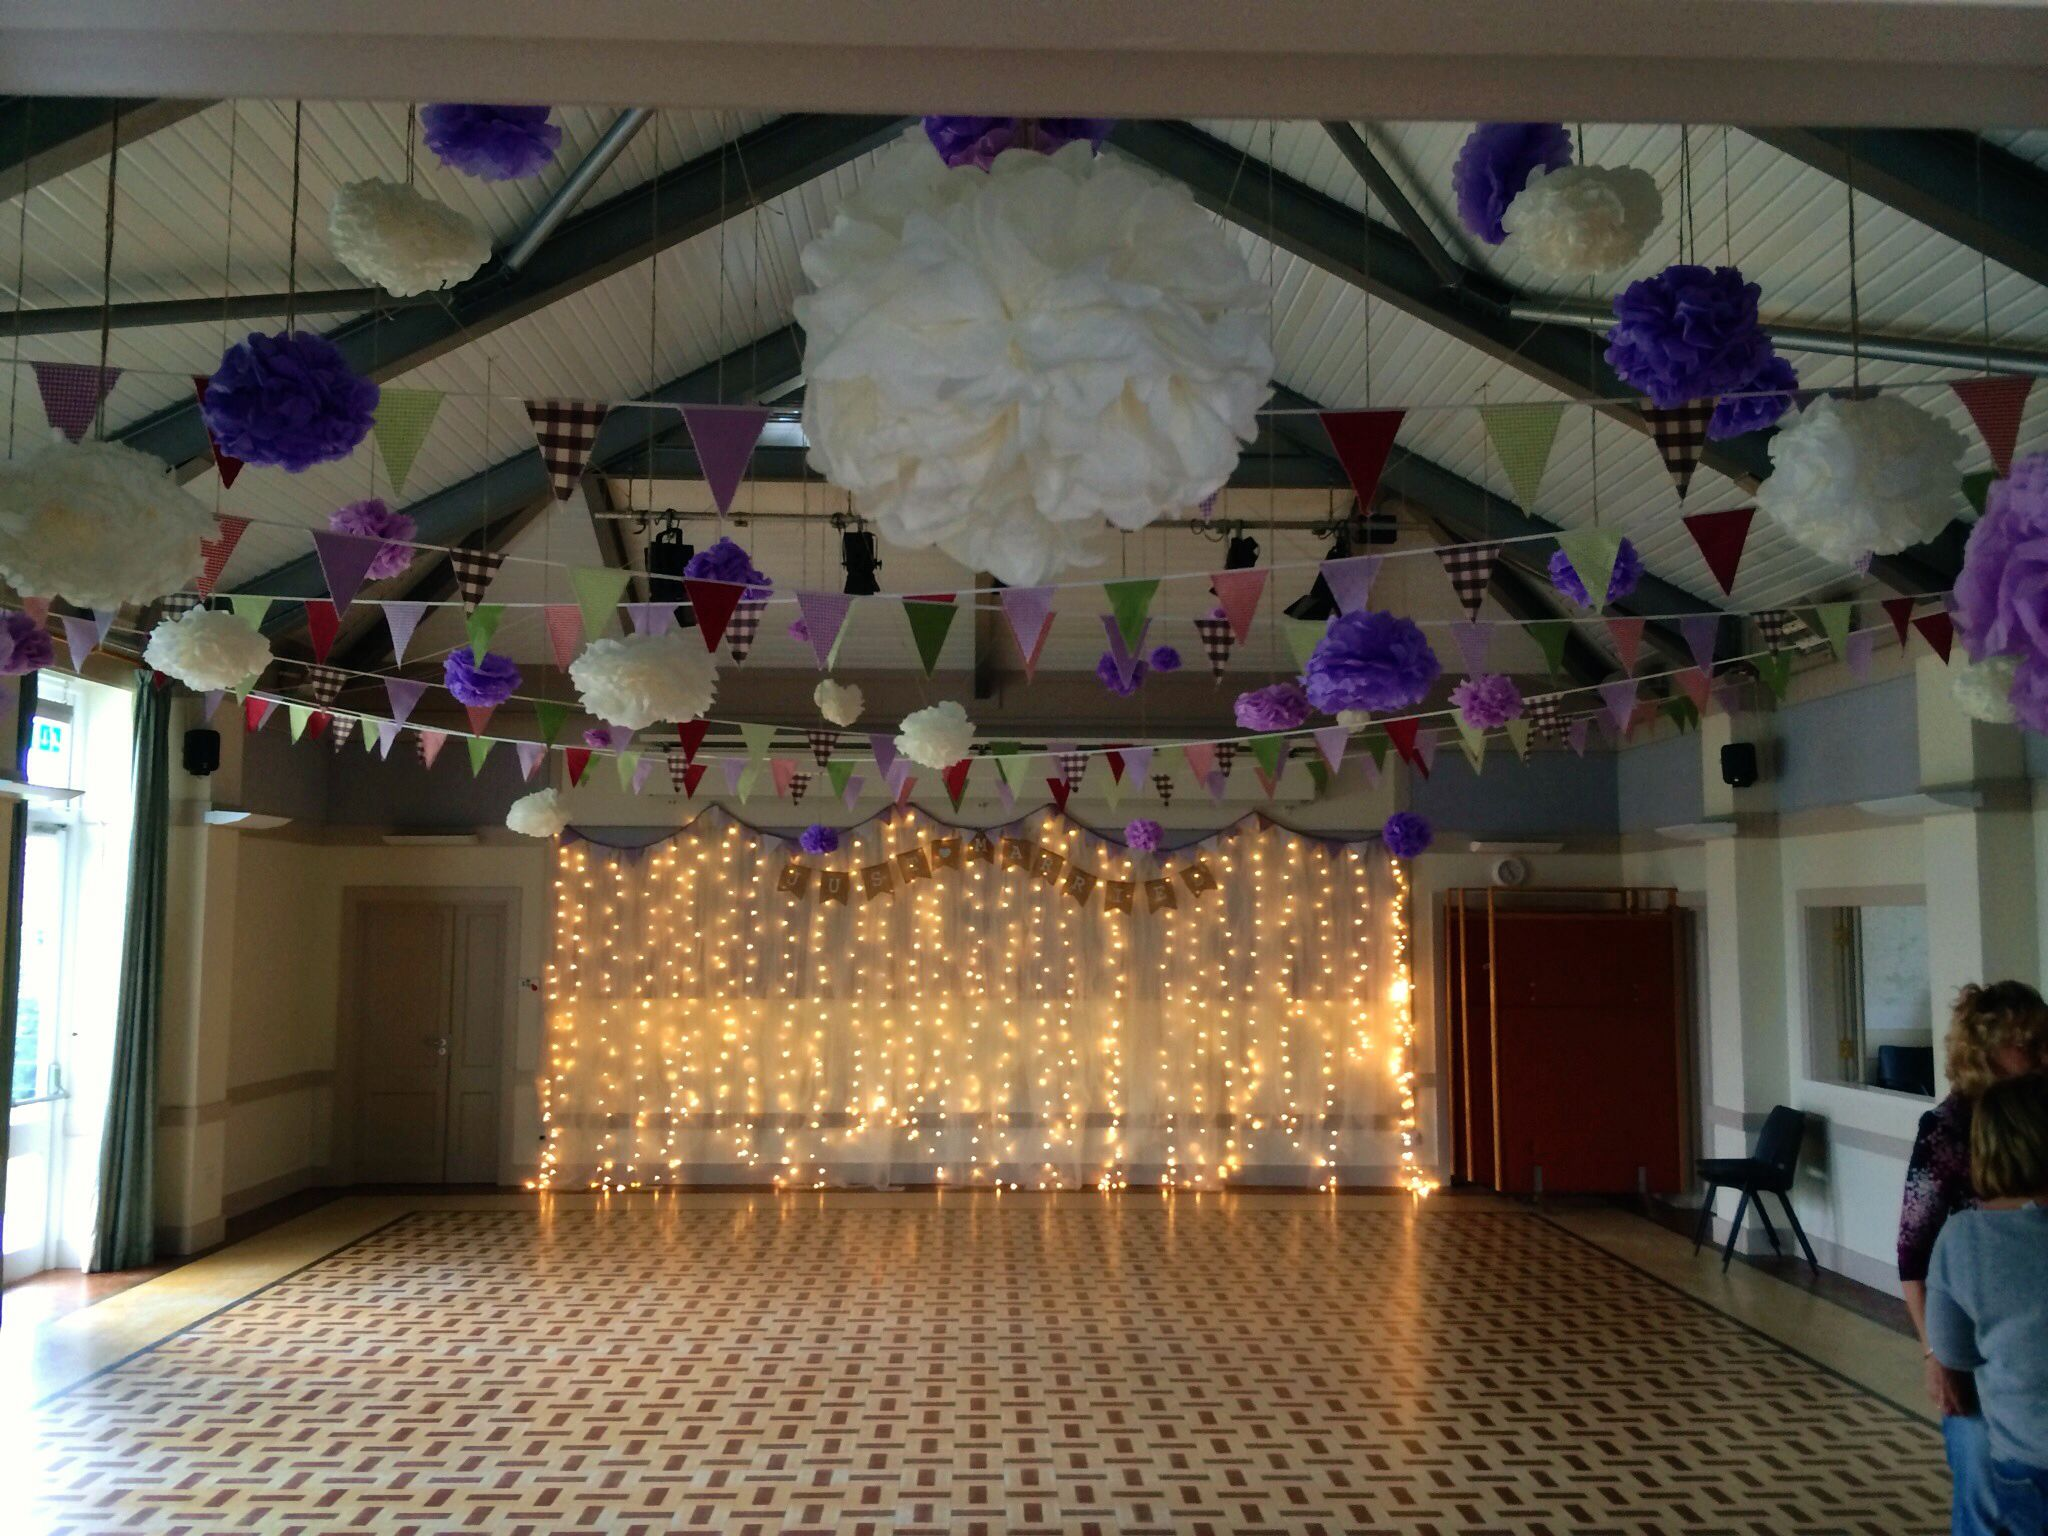 Wedding decorations tulle and lights  Our Village Hall Wedding Fairy light and Tulle backdrop with